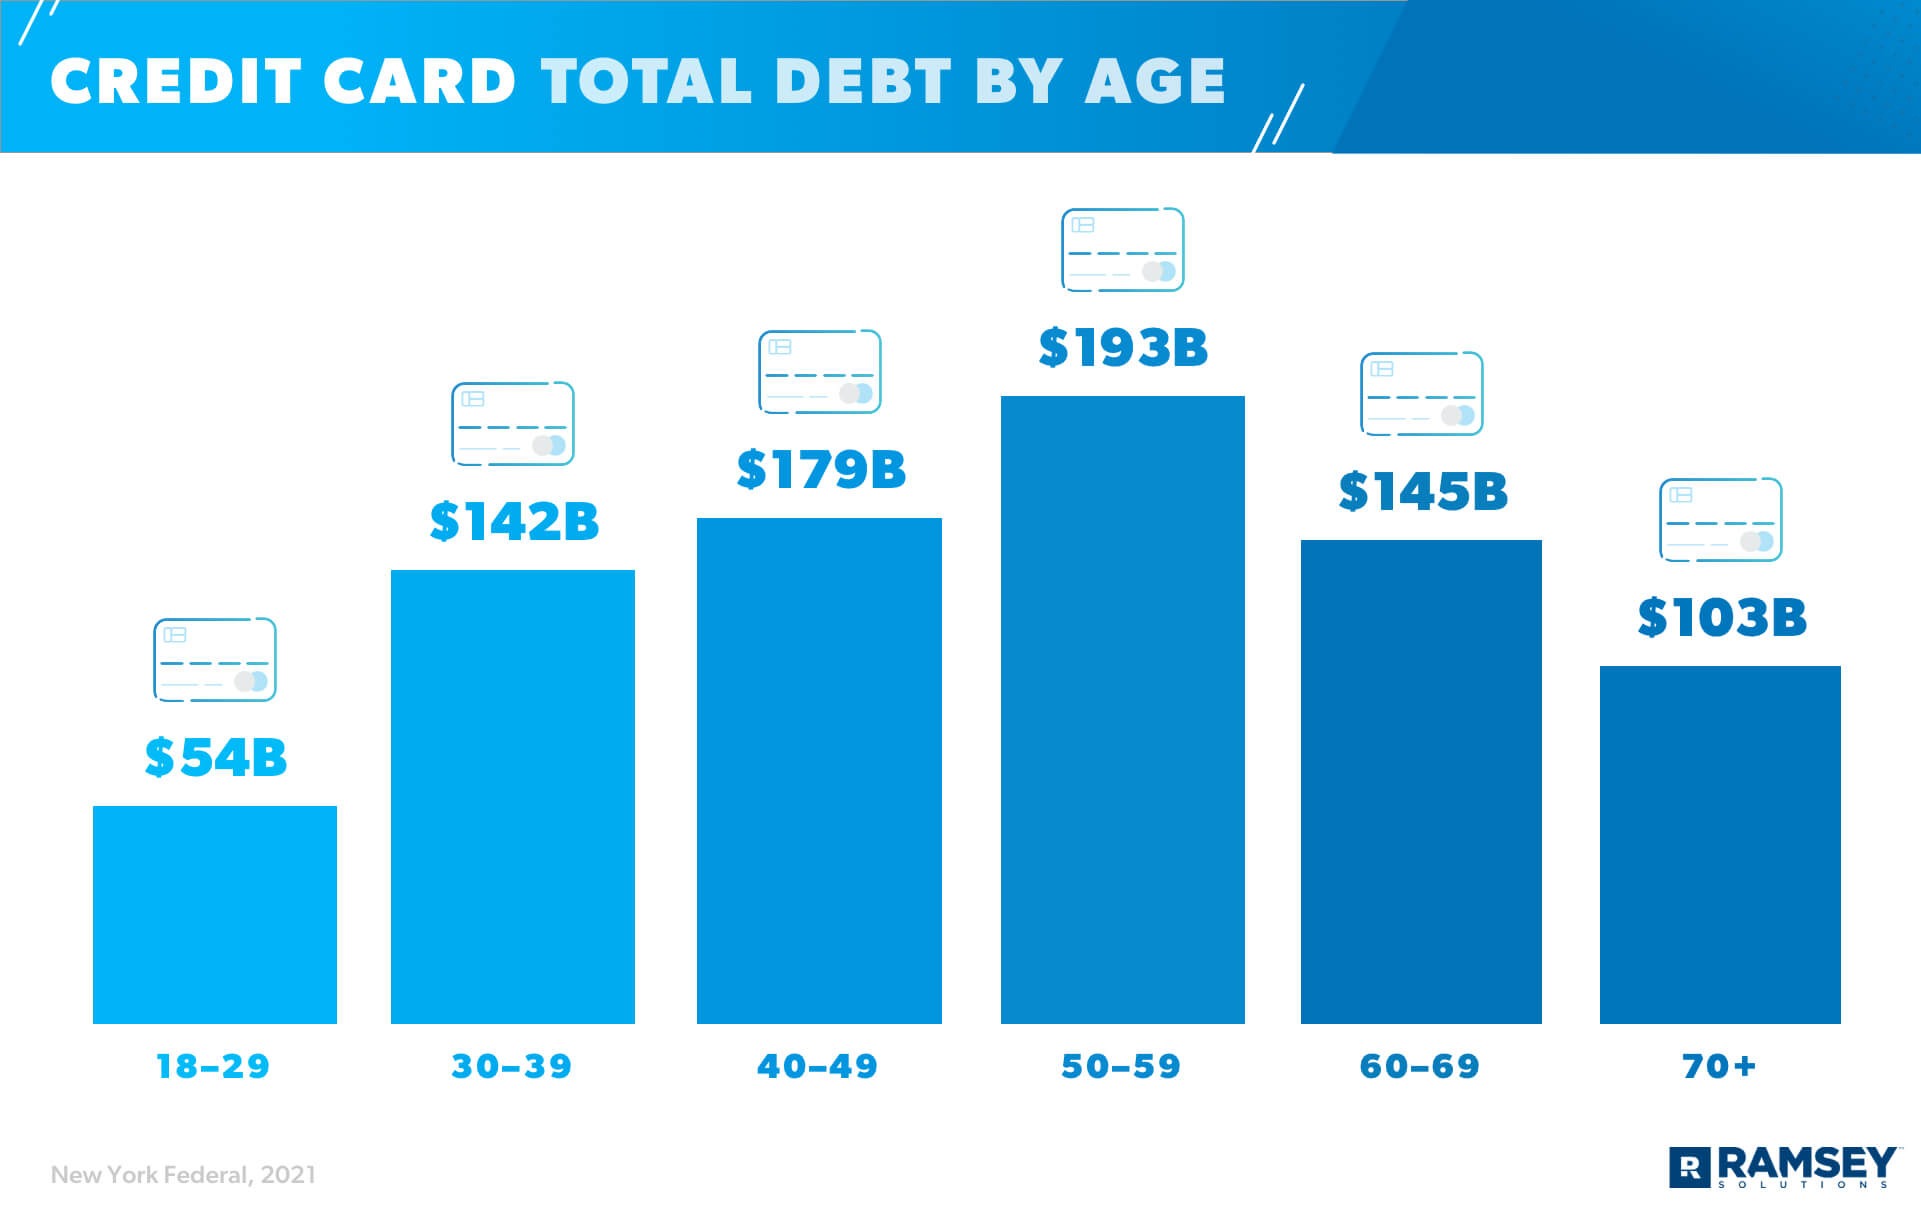 Credit Card Total Debt By Age